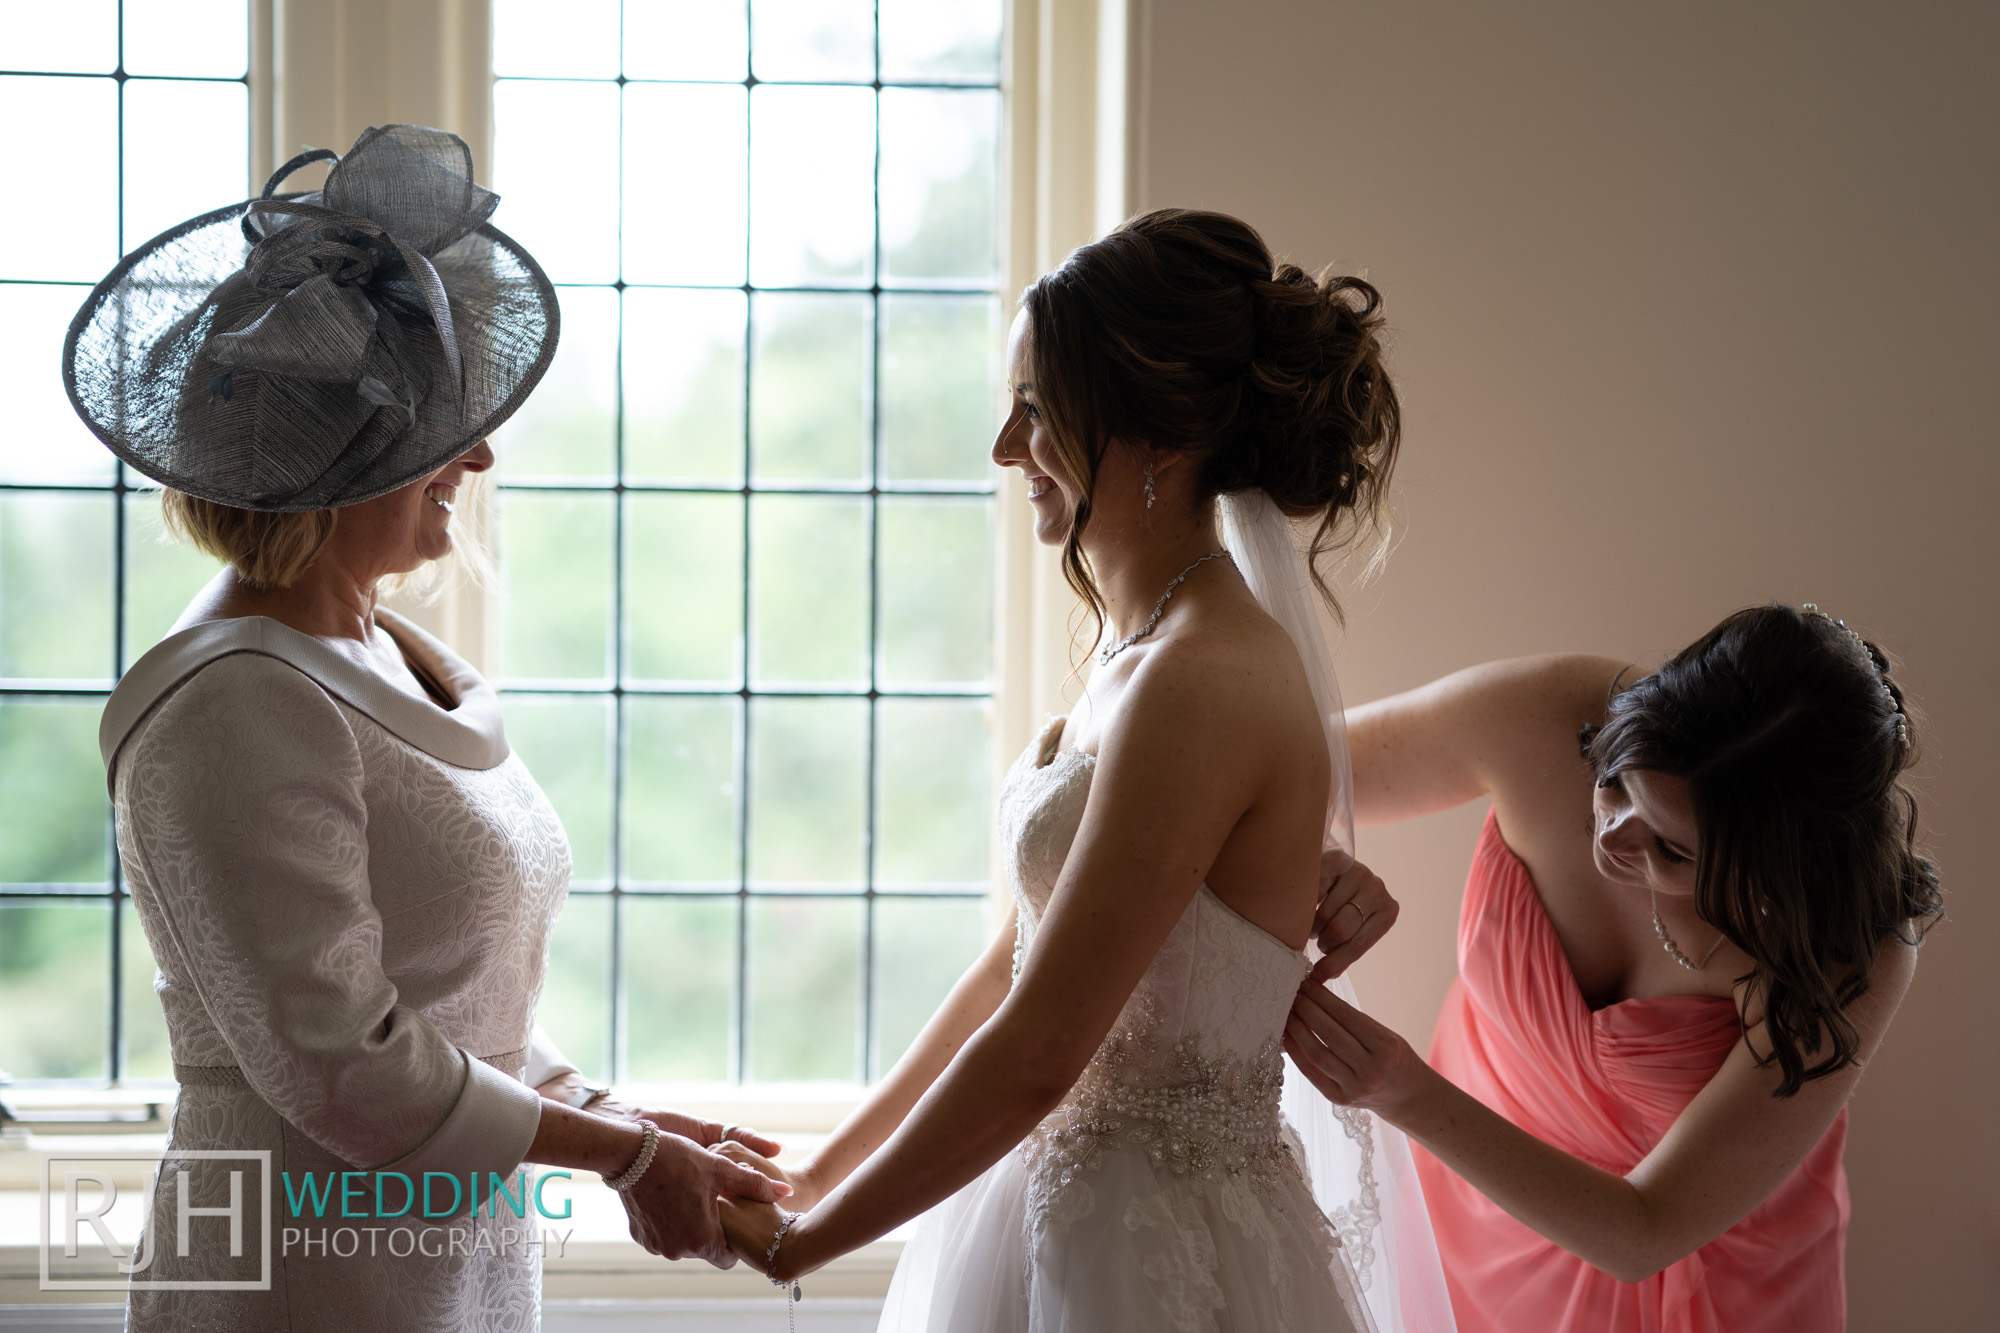 Whirlowbrook Hall Wedding Photography_Jack & Lydia_021_DS204730.jpg